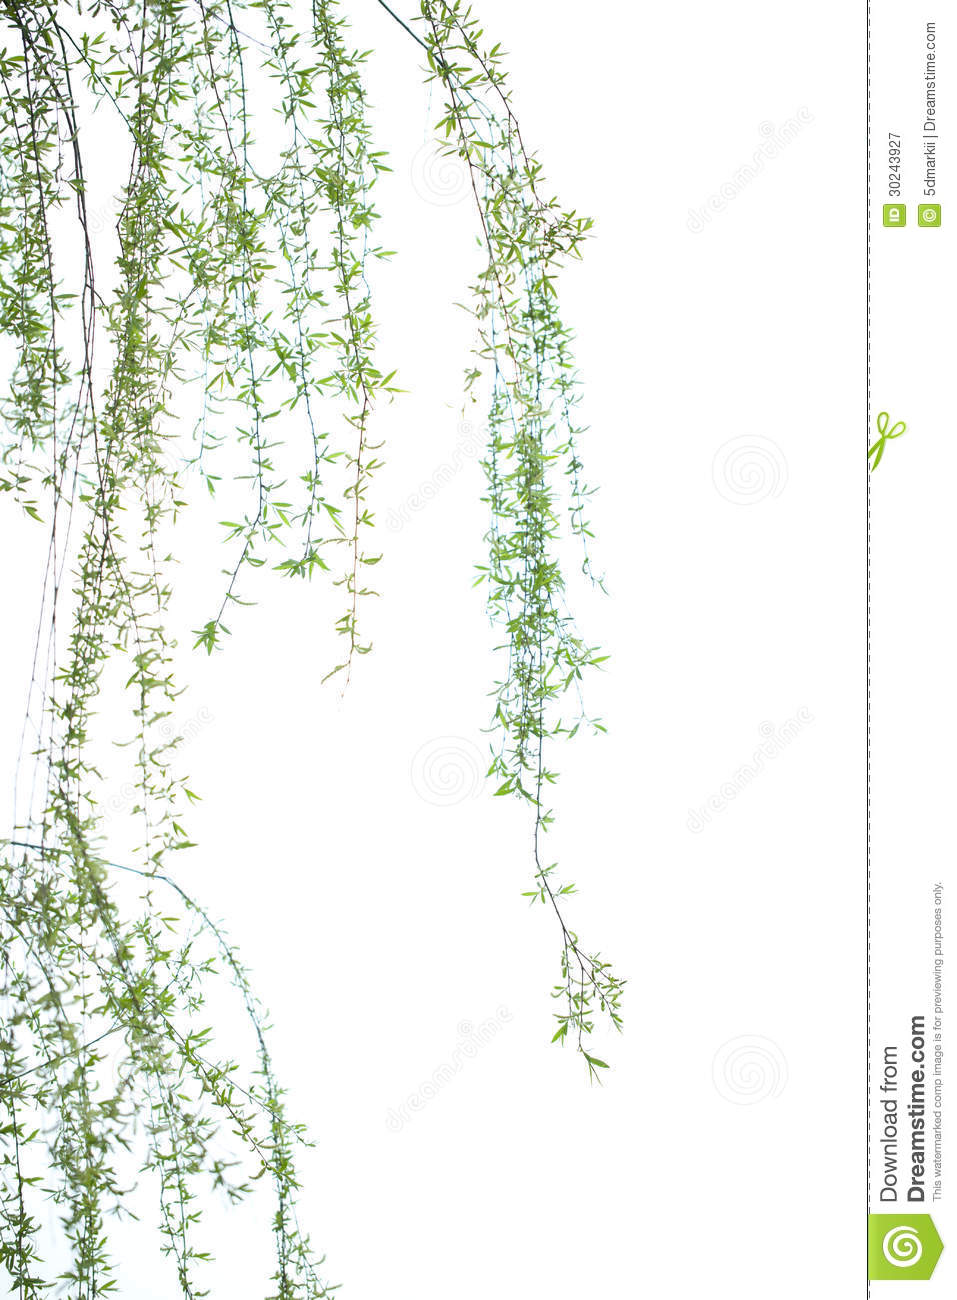 prolonged Willow